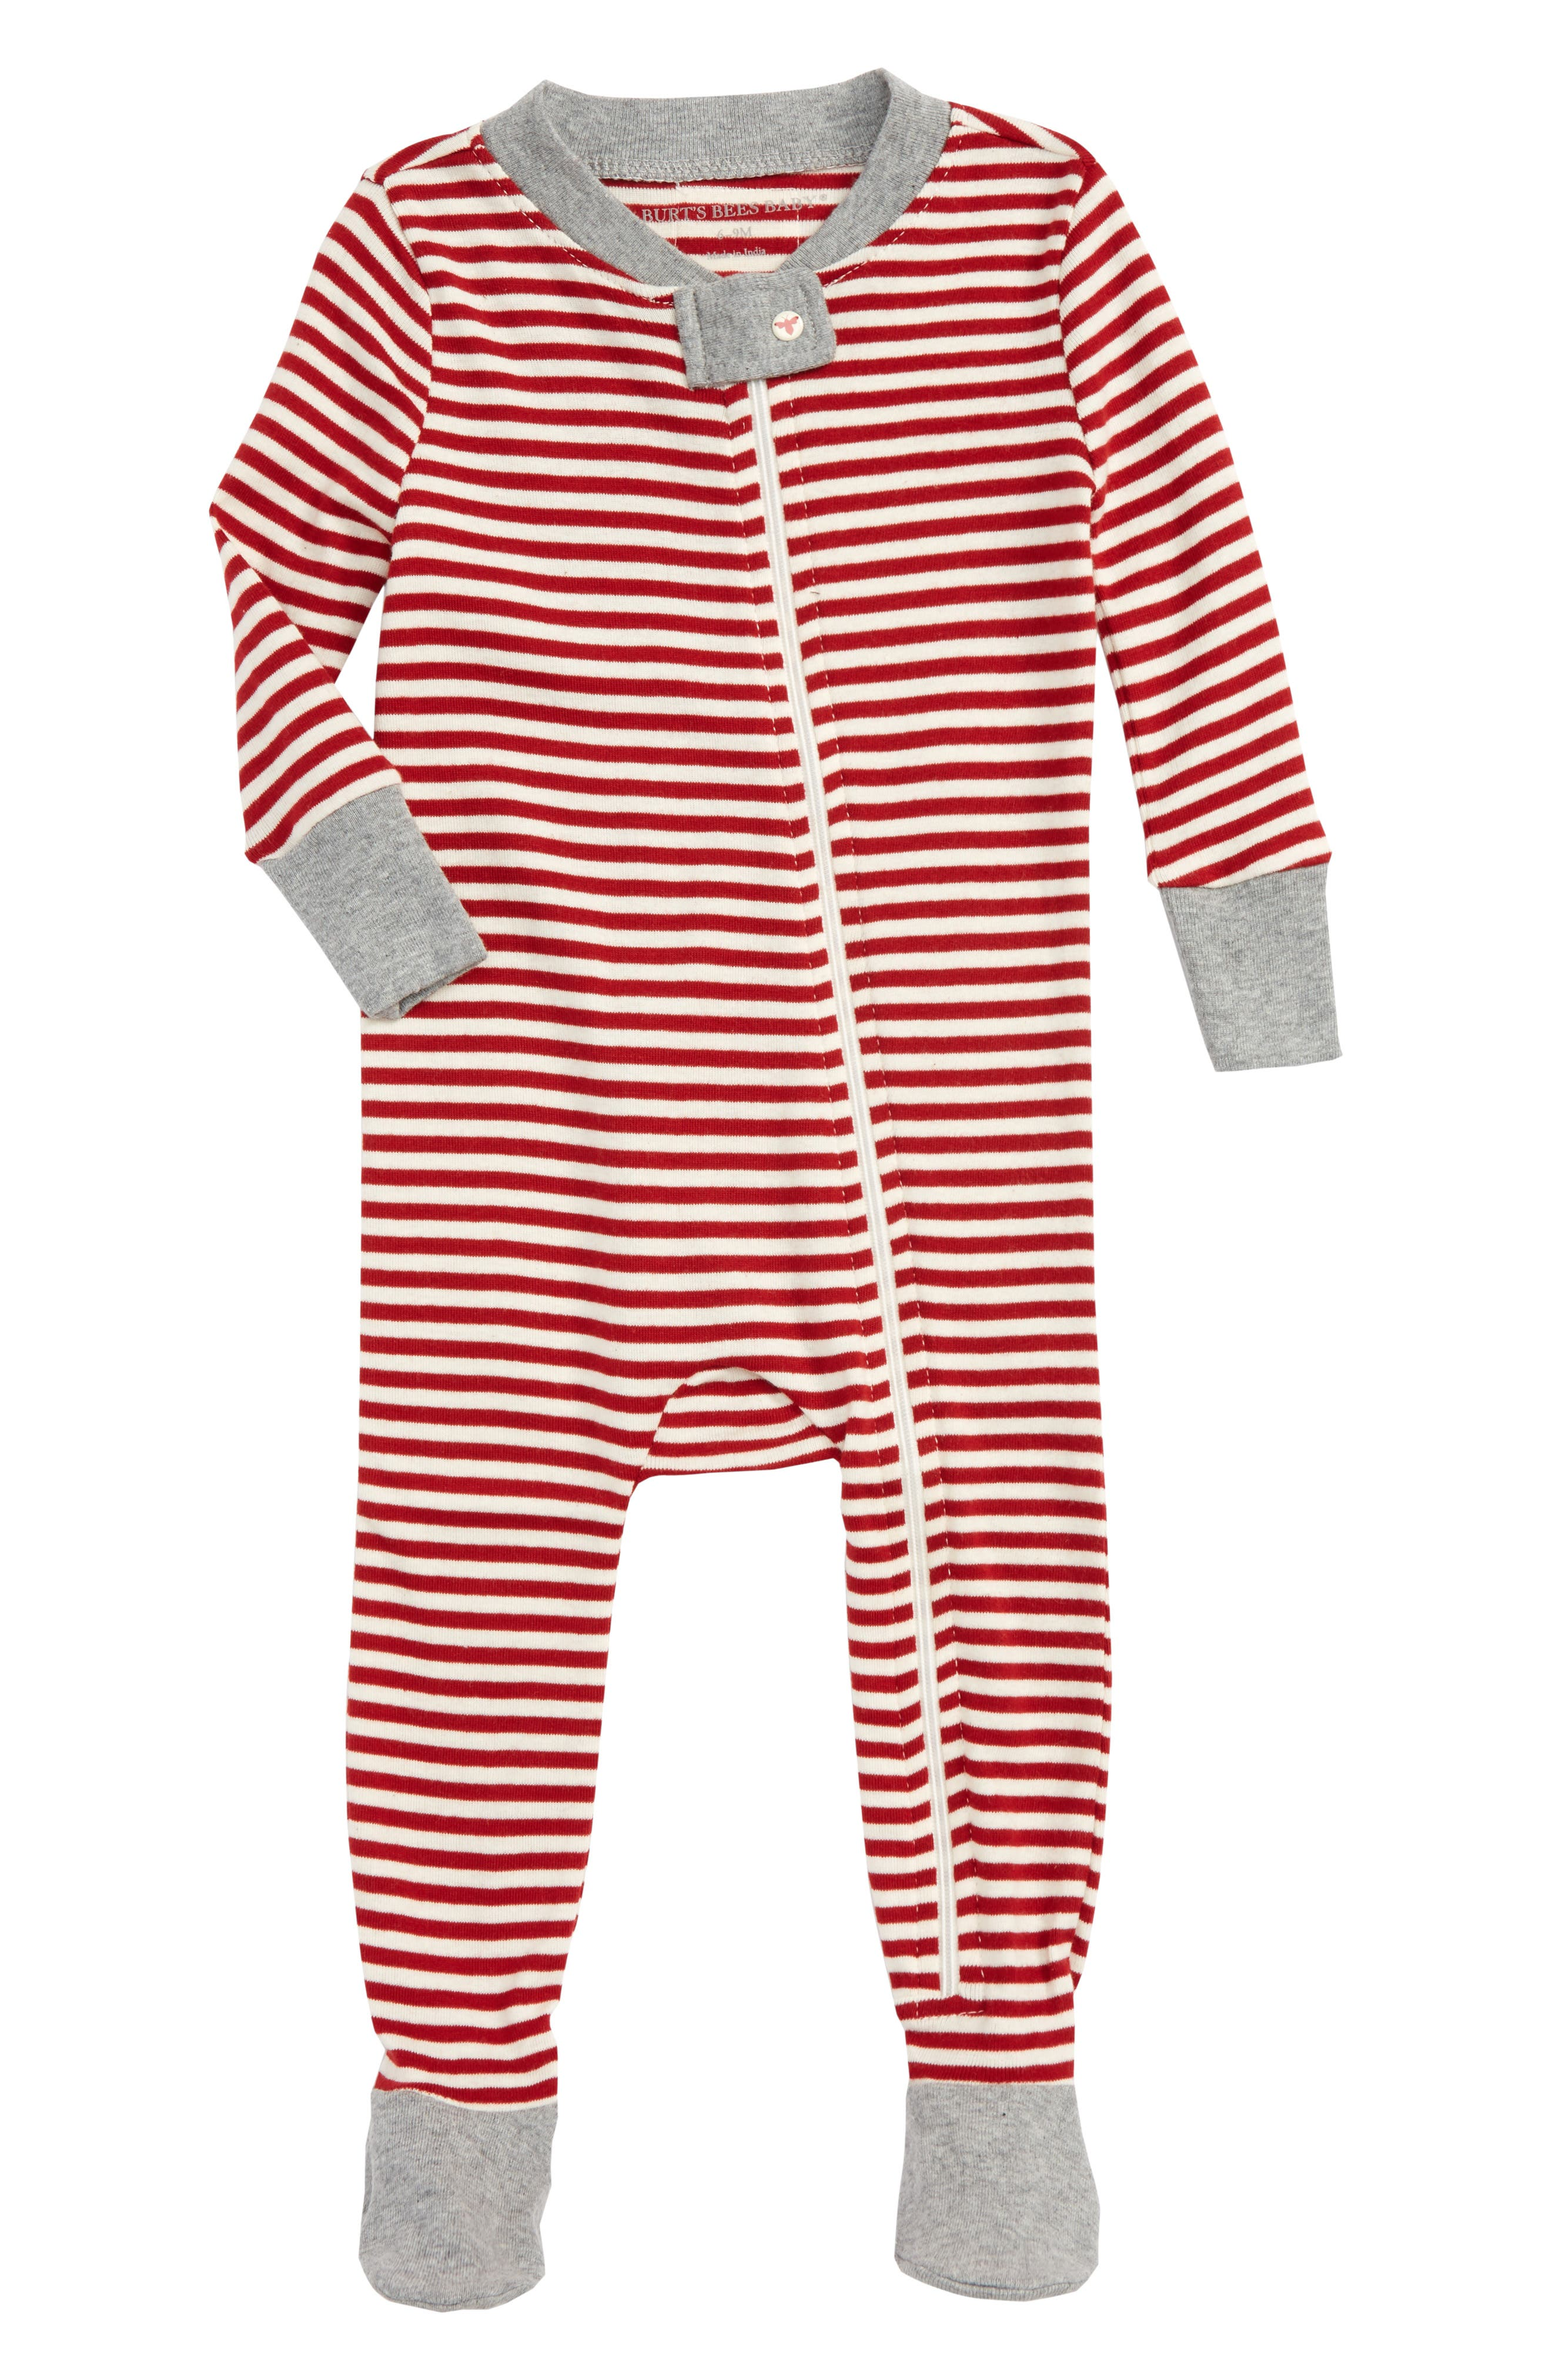 Alternate Image 1 Selected - Burt's Bees Baby Fitted One-Piece Footie Pajamas (Baby)